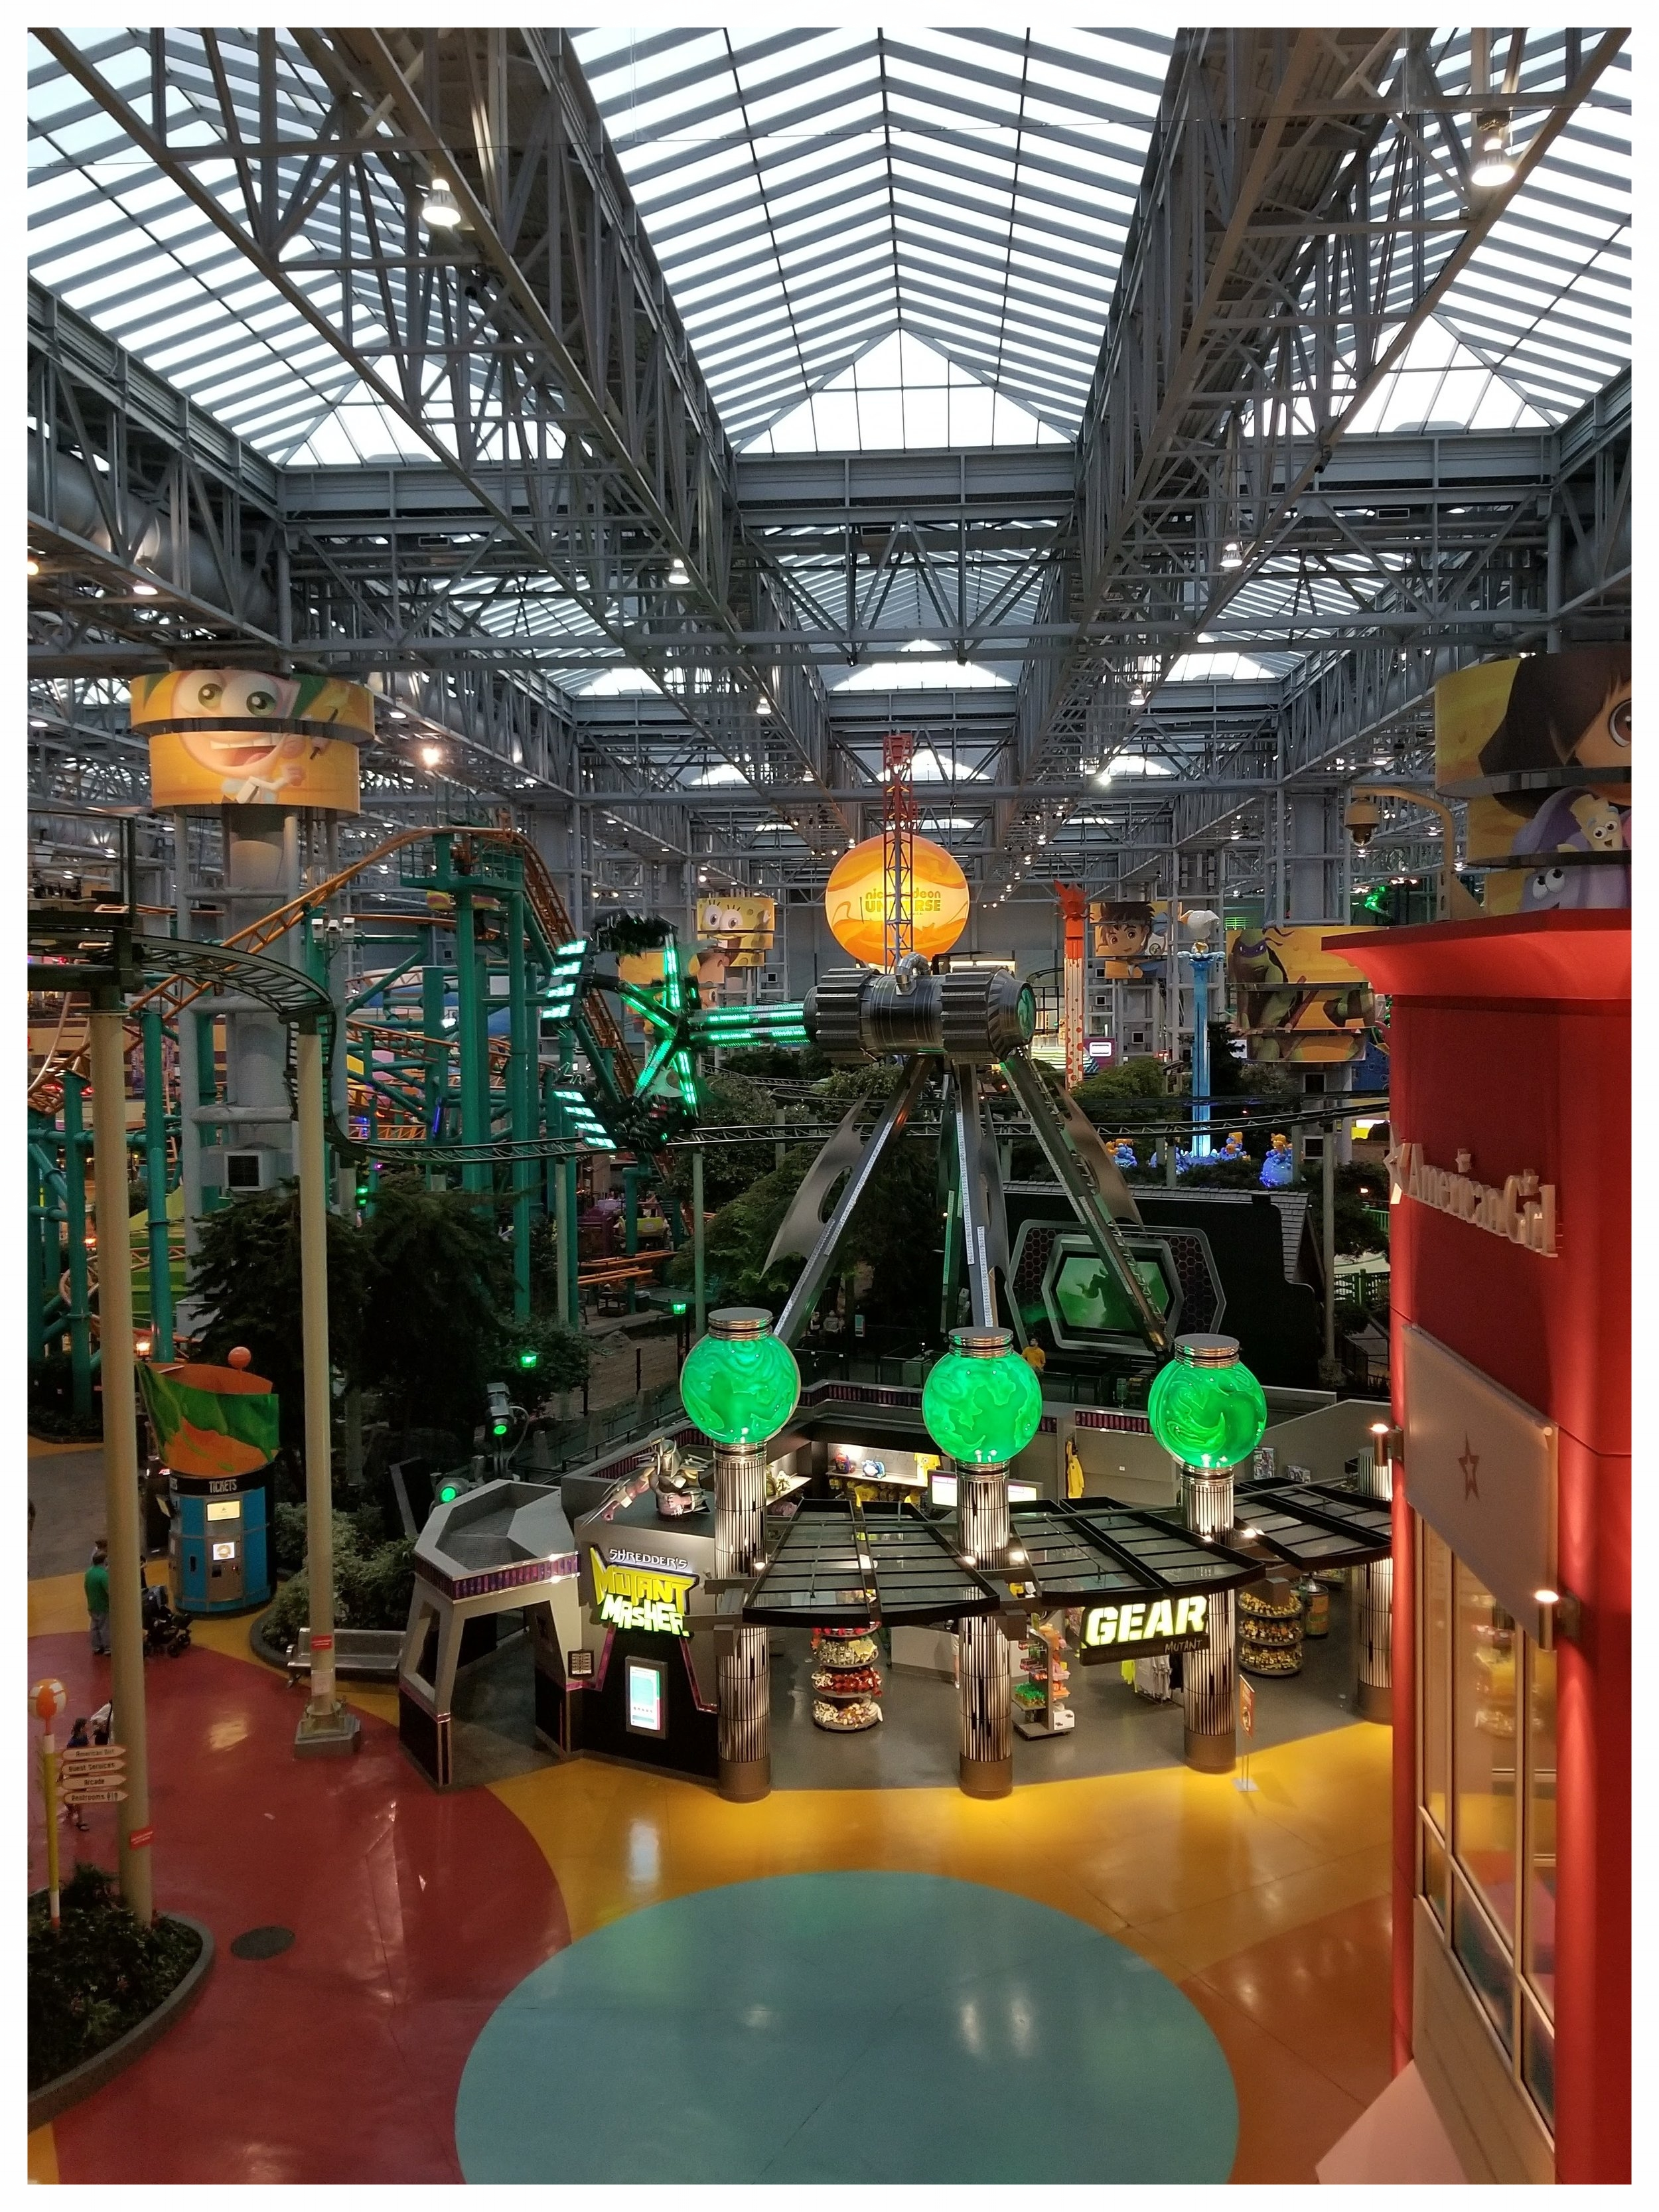 It is a mall with a roller coaster inside, but still just a mall.